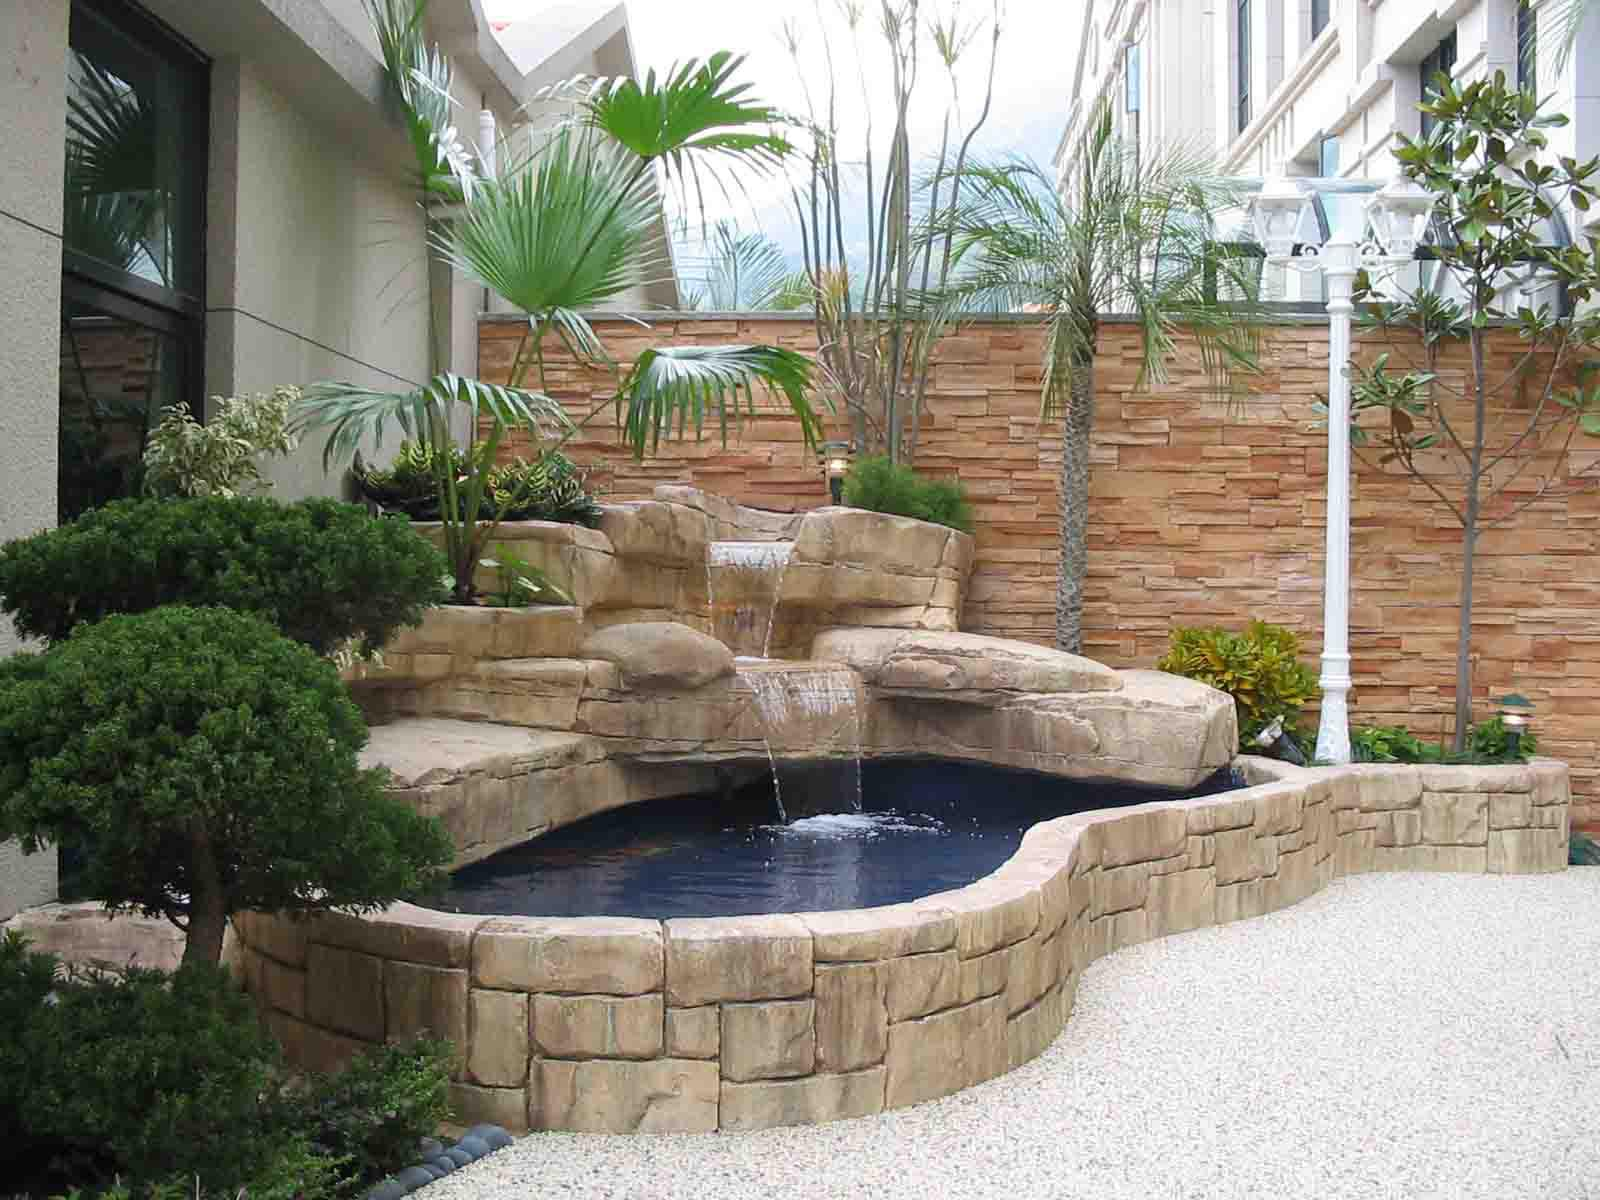 Fish pond garden design backyard design ideas for Small pond house plans